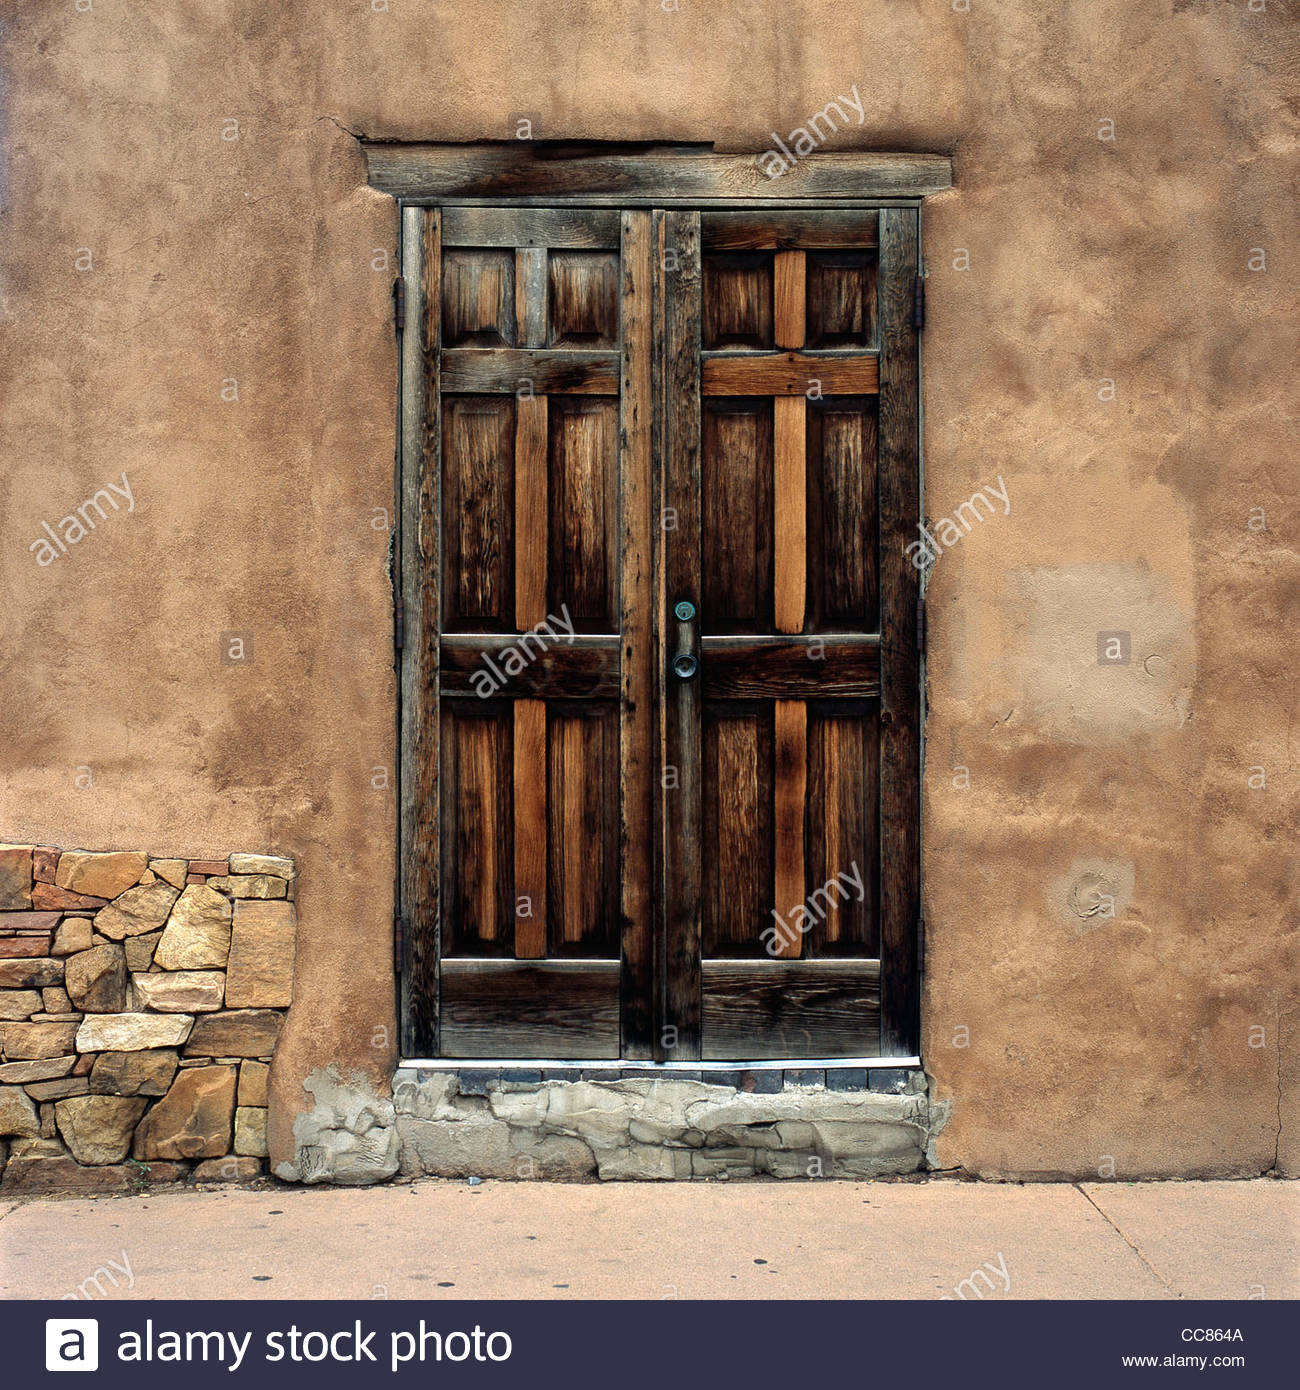 Wooden door on an adobe building, Santa Fe, New Mexico, United States - Stock Image